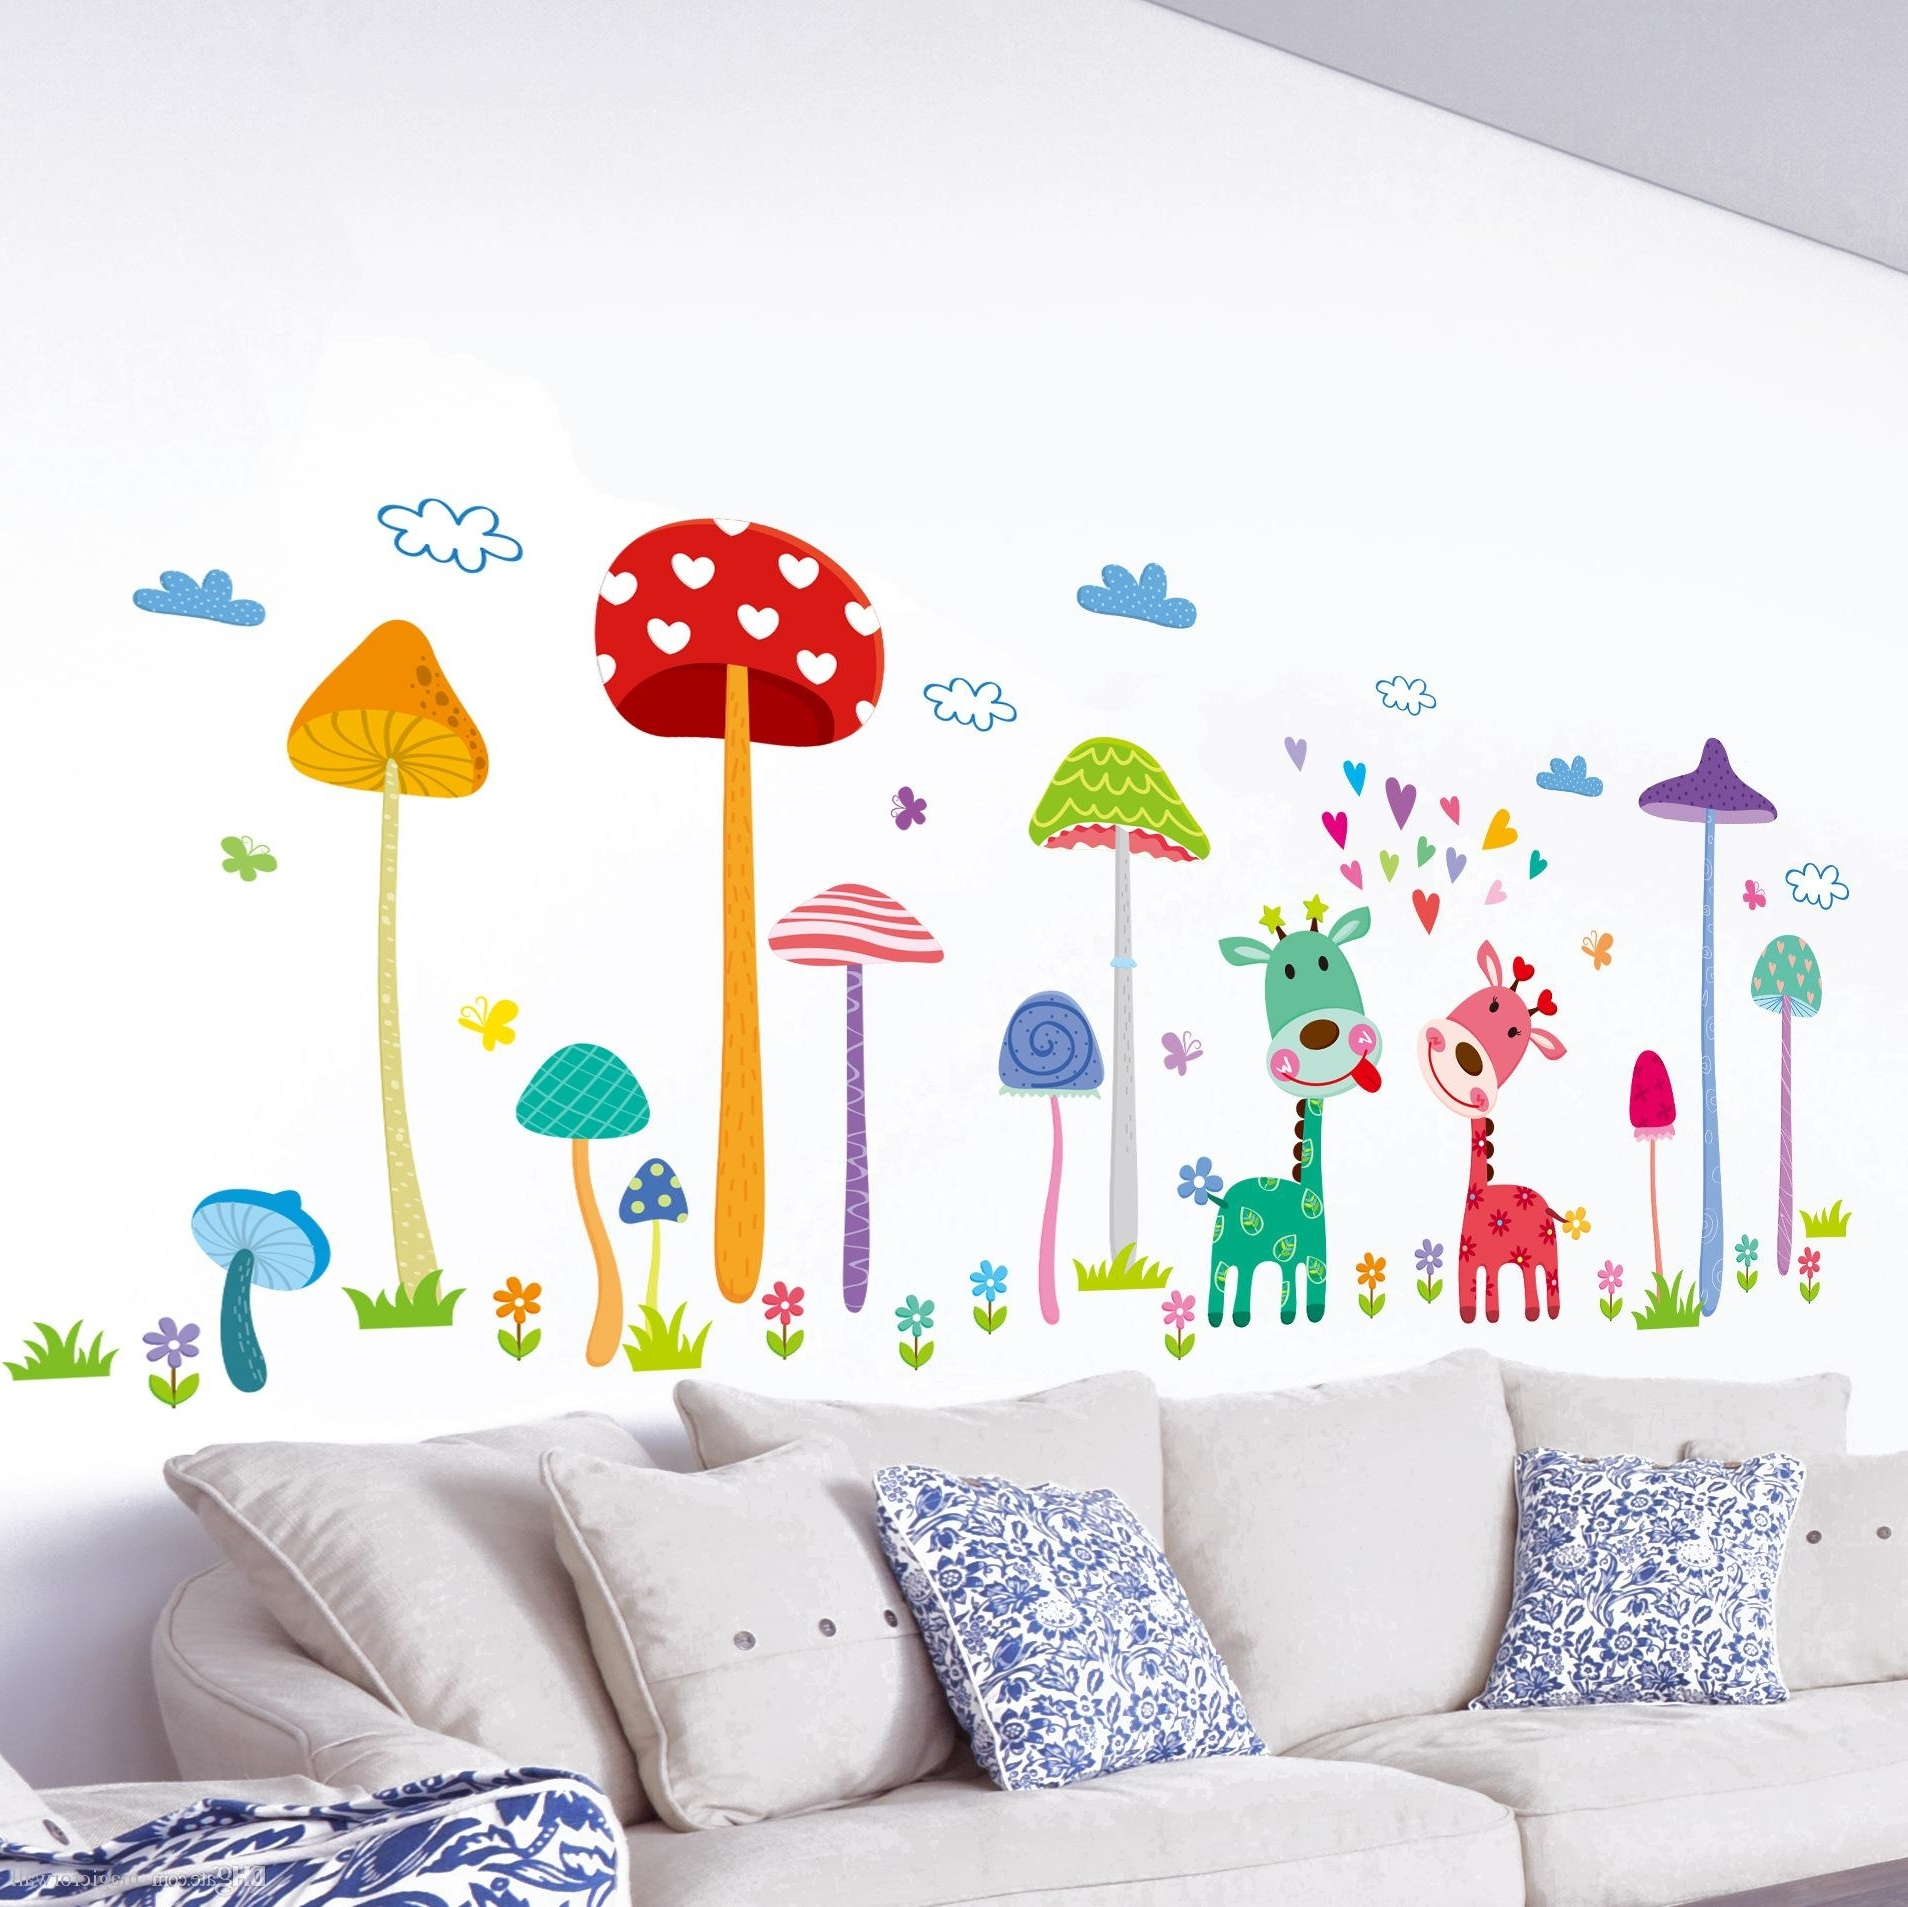 Creative kids wall art ideas custom home design for Children wall mural ideas